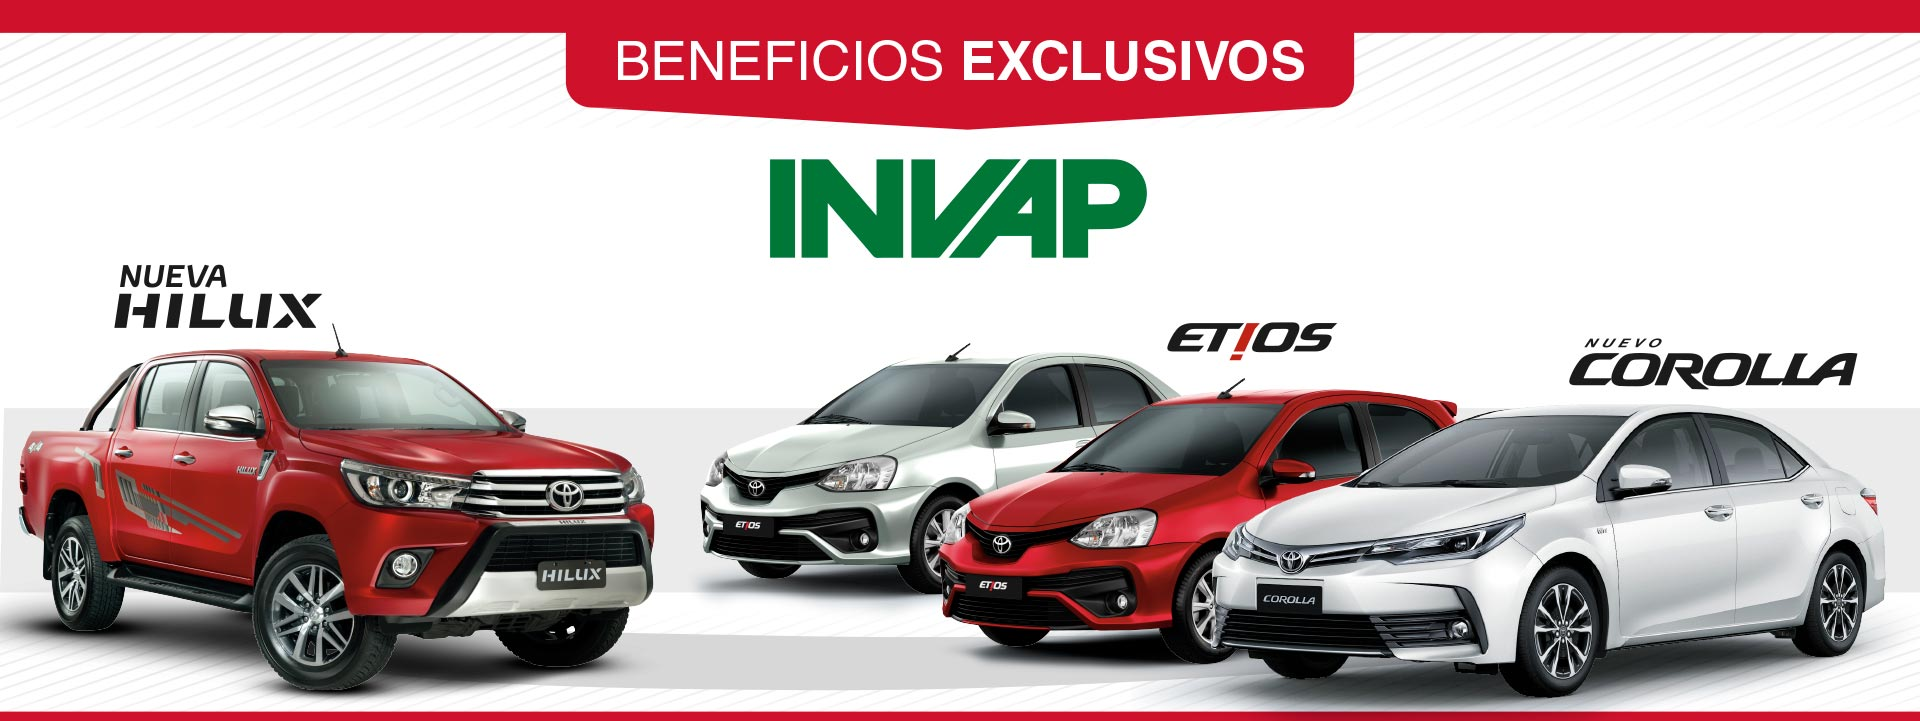 Beneficios Exclusivos INVAP